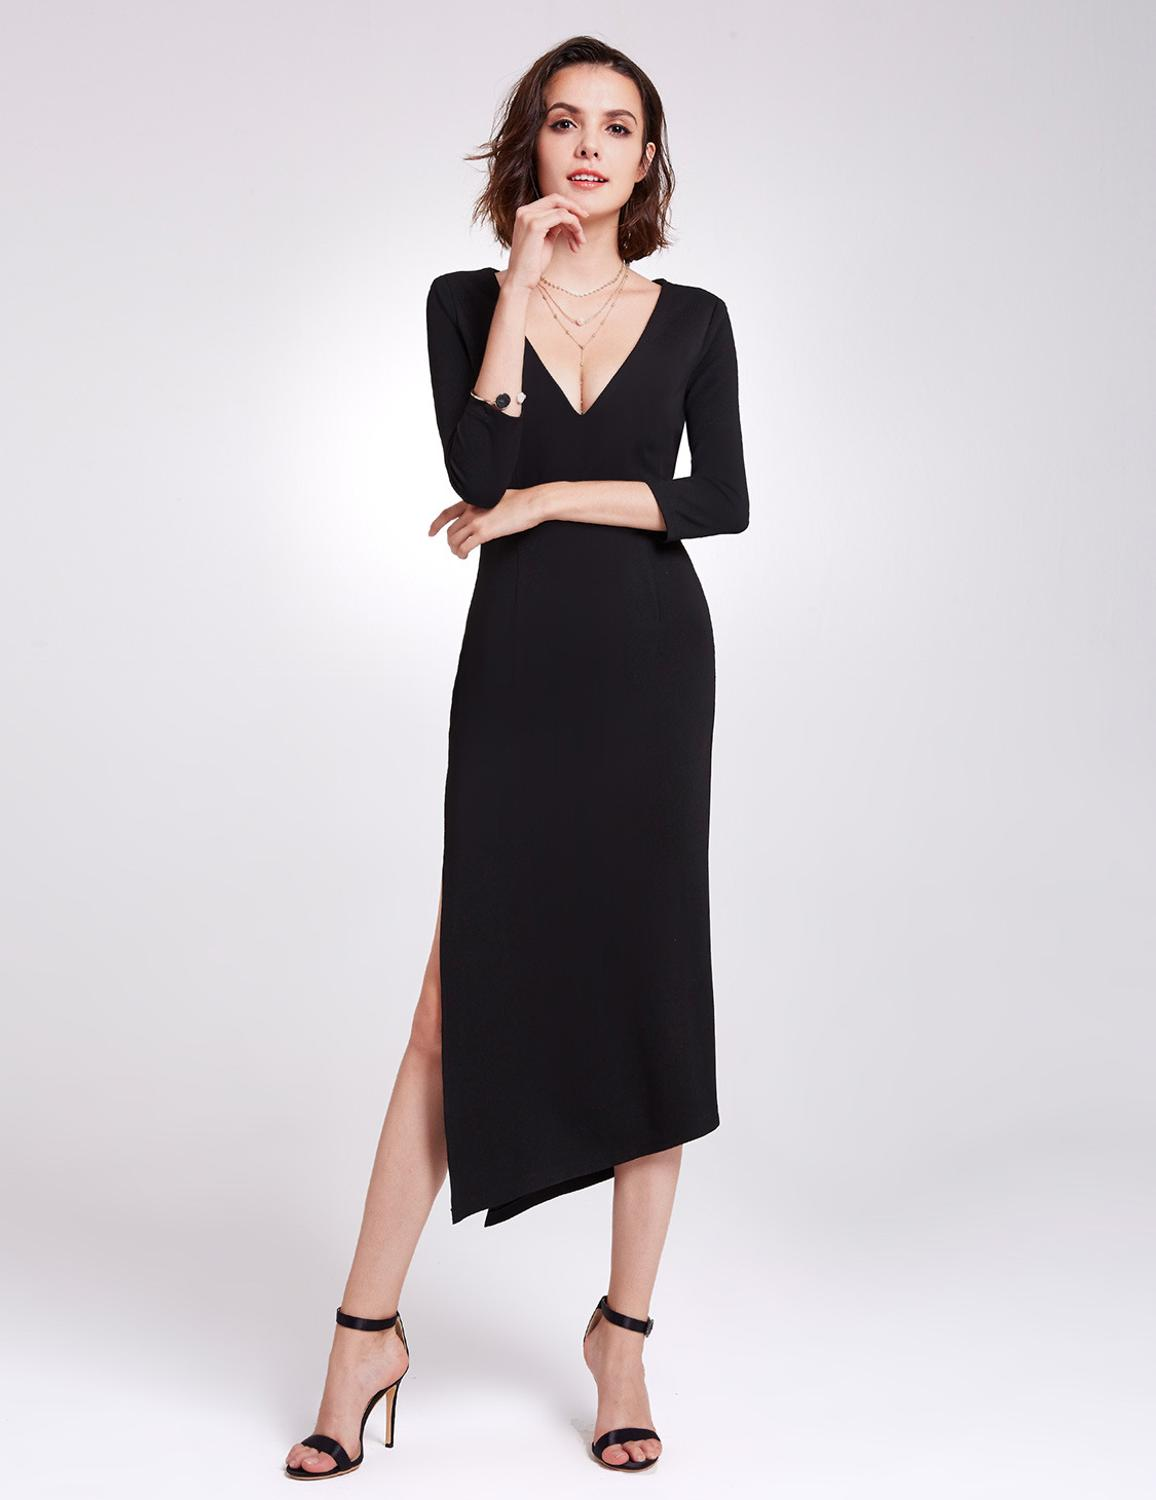 Asymmetrical Hem   Cocktail     Dress   Deep V-neck 3/4 Sleeves Black Classic   Dress   Side Slit Simple Pretty Forever   Dress   for Party